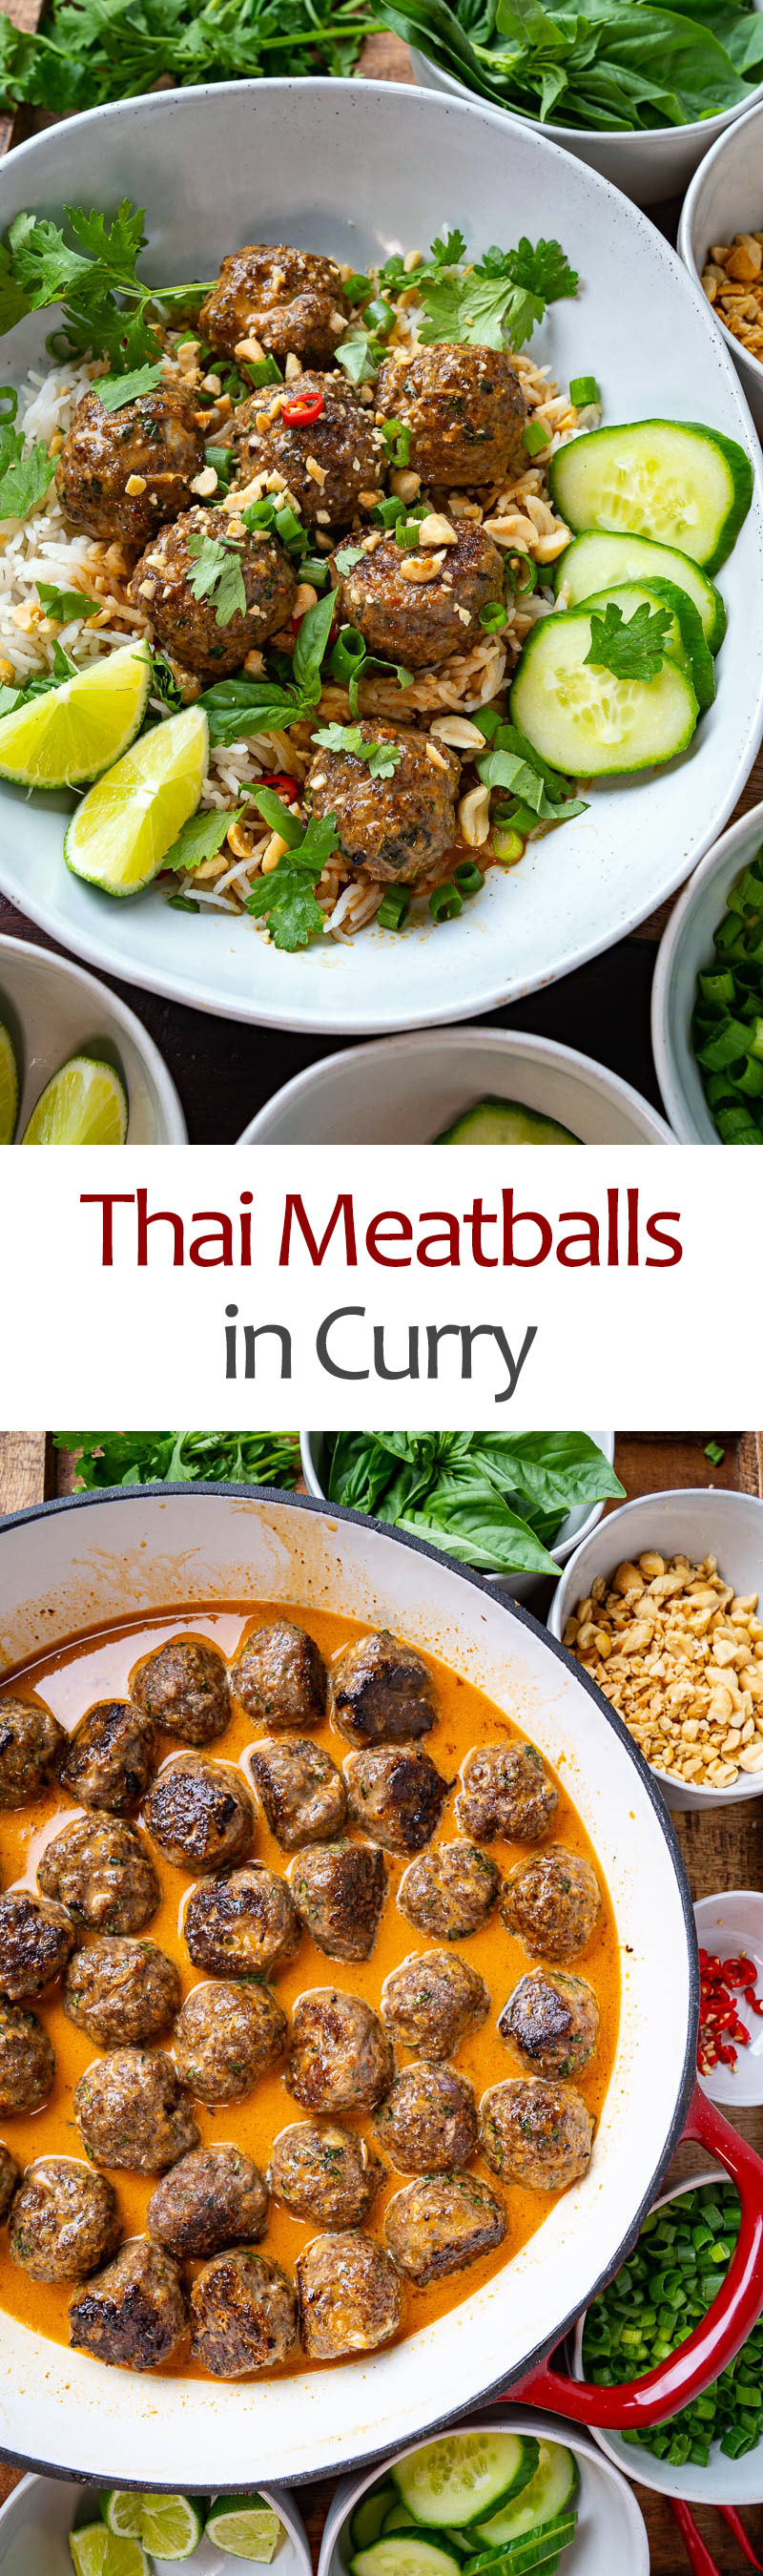 Thai Meatballs in Curry